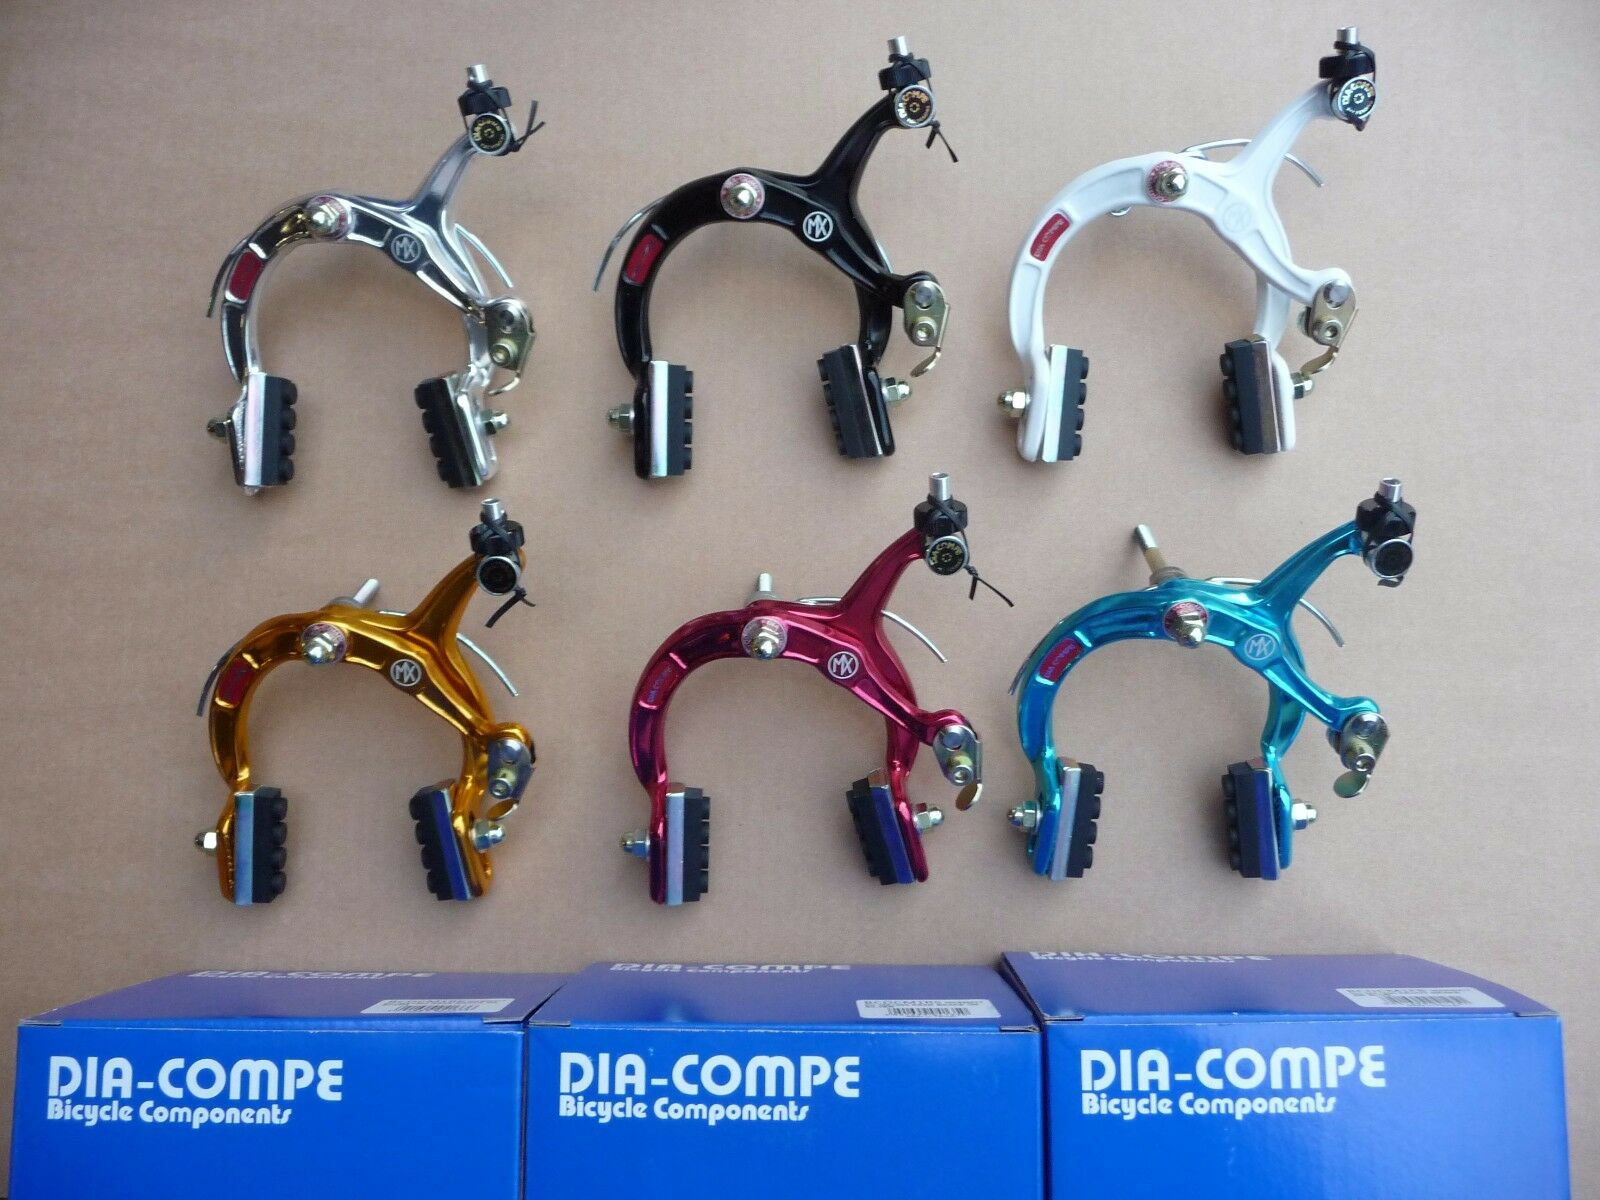 Dia-Compe MX1000 Front Caliper Brake Oldschool BMX Old School Burner Skyway GT